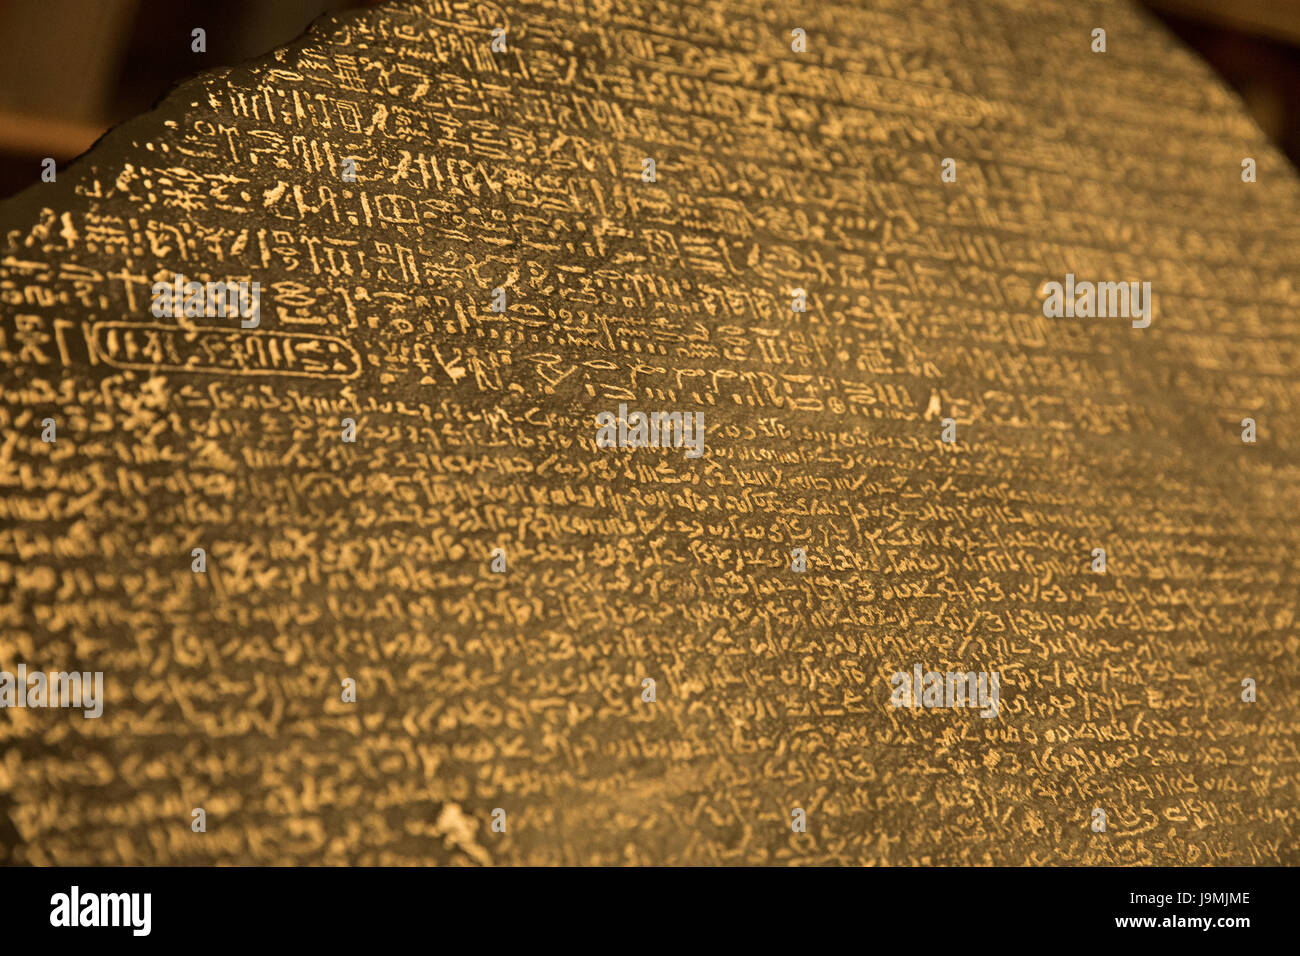 Egyptian hieroglyphs, demotic script, Ancient greek - Rosetta Stone, 196 BC, British Museum, London, England, UK - Stock Image